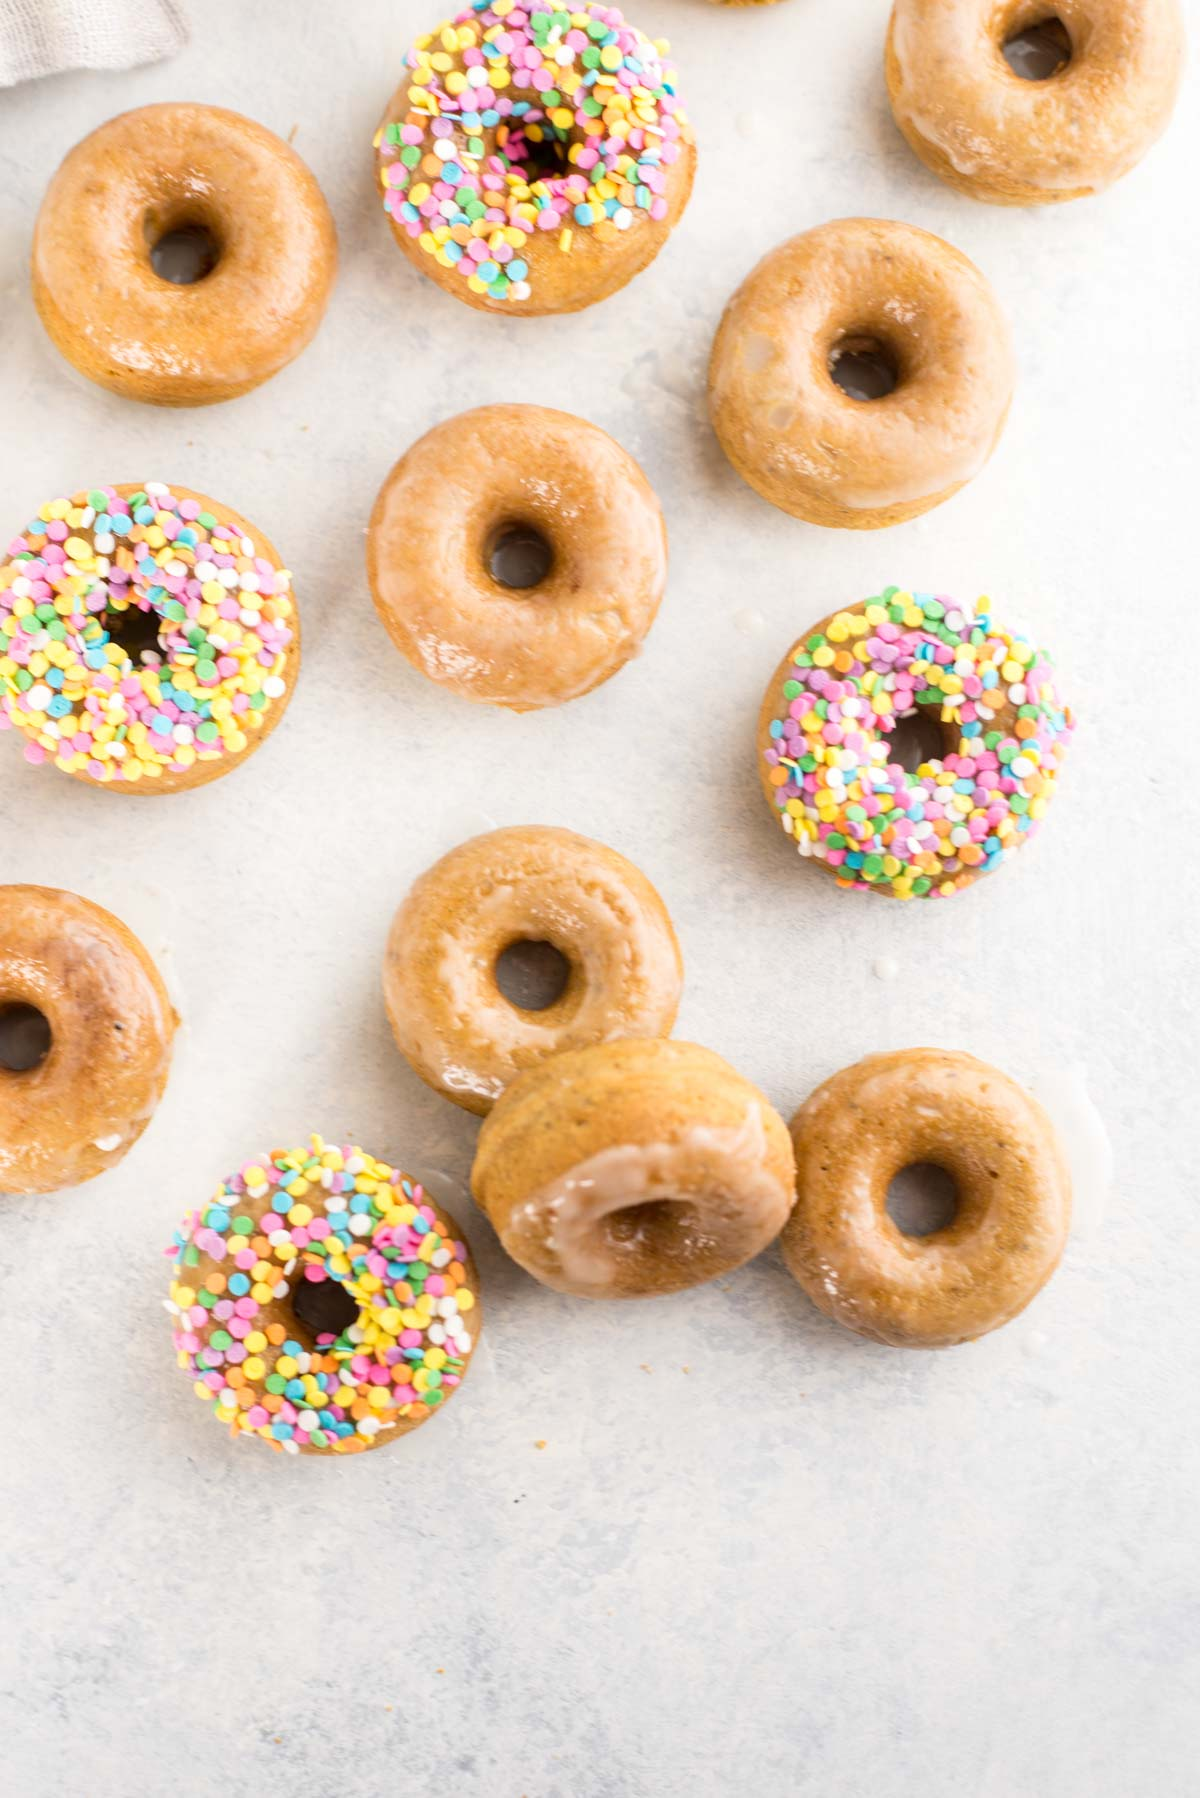 These easy lemon old-fashioned gluten-free donuts are low carbohydrate, high protein and high in fiber.